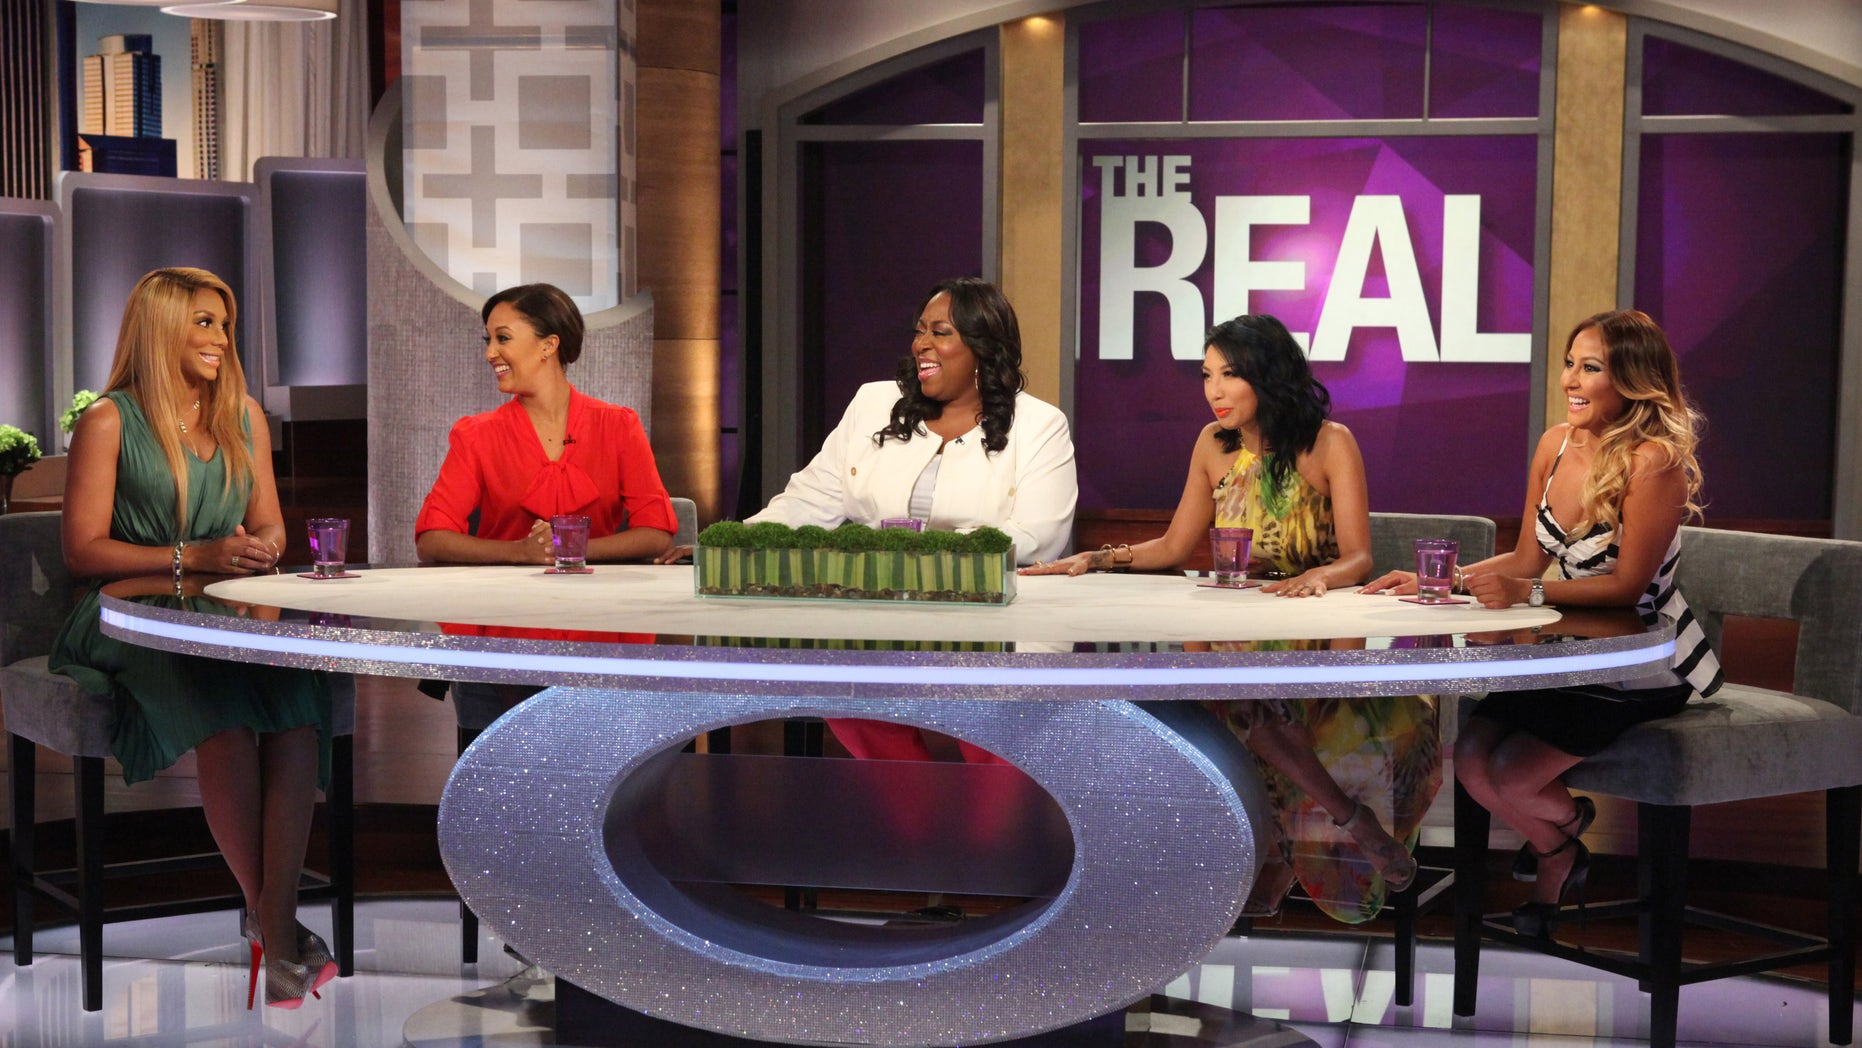 """Hosts of """"The Real"""" (From Left to Right: Tamar Braxton, Tamera Mowry-Housley, Loni Love, Jeannie Mai and Adrienne Bailon) on set."""